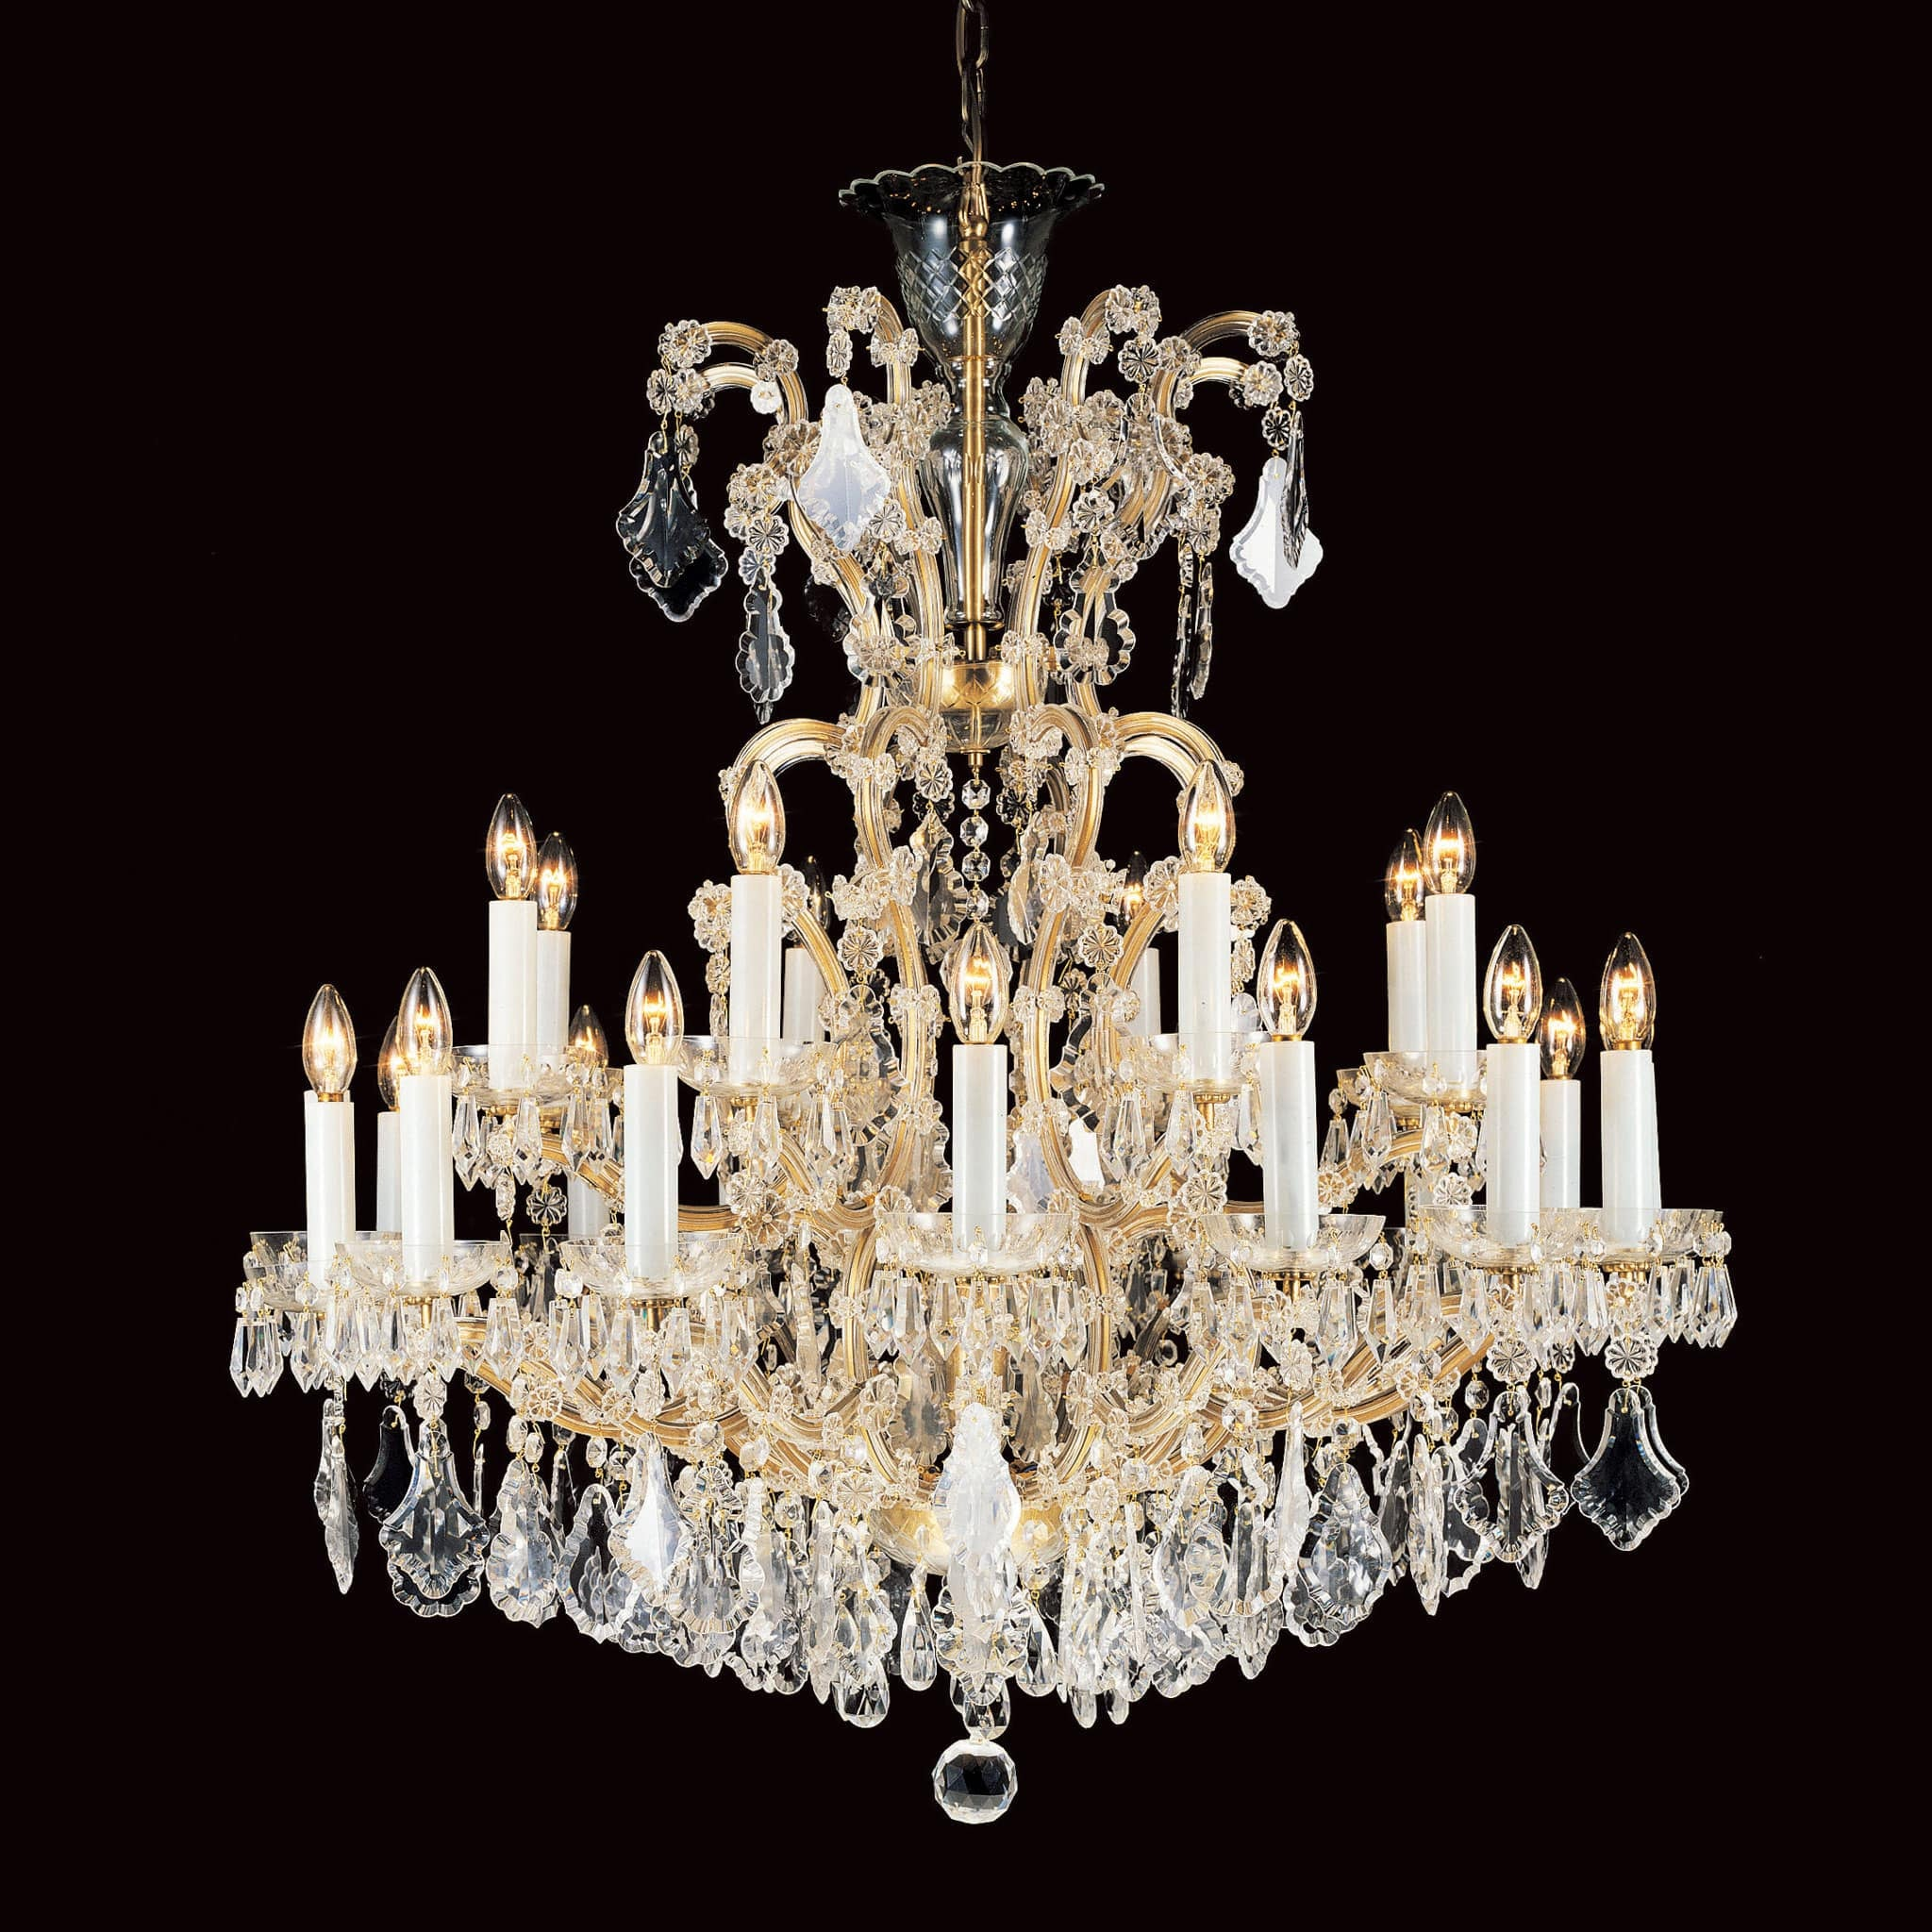 Impex misto 25 light czech preciosa crystal chandelier chandelier impex misto 25 light czech preciosa crystal chandelier cb14531125 aloadofball Gallery